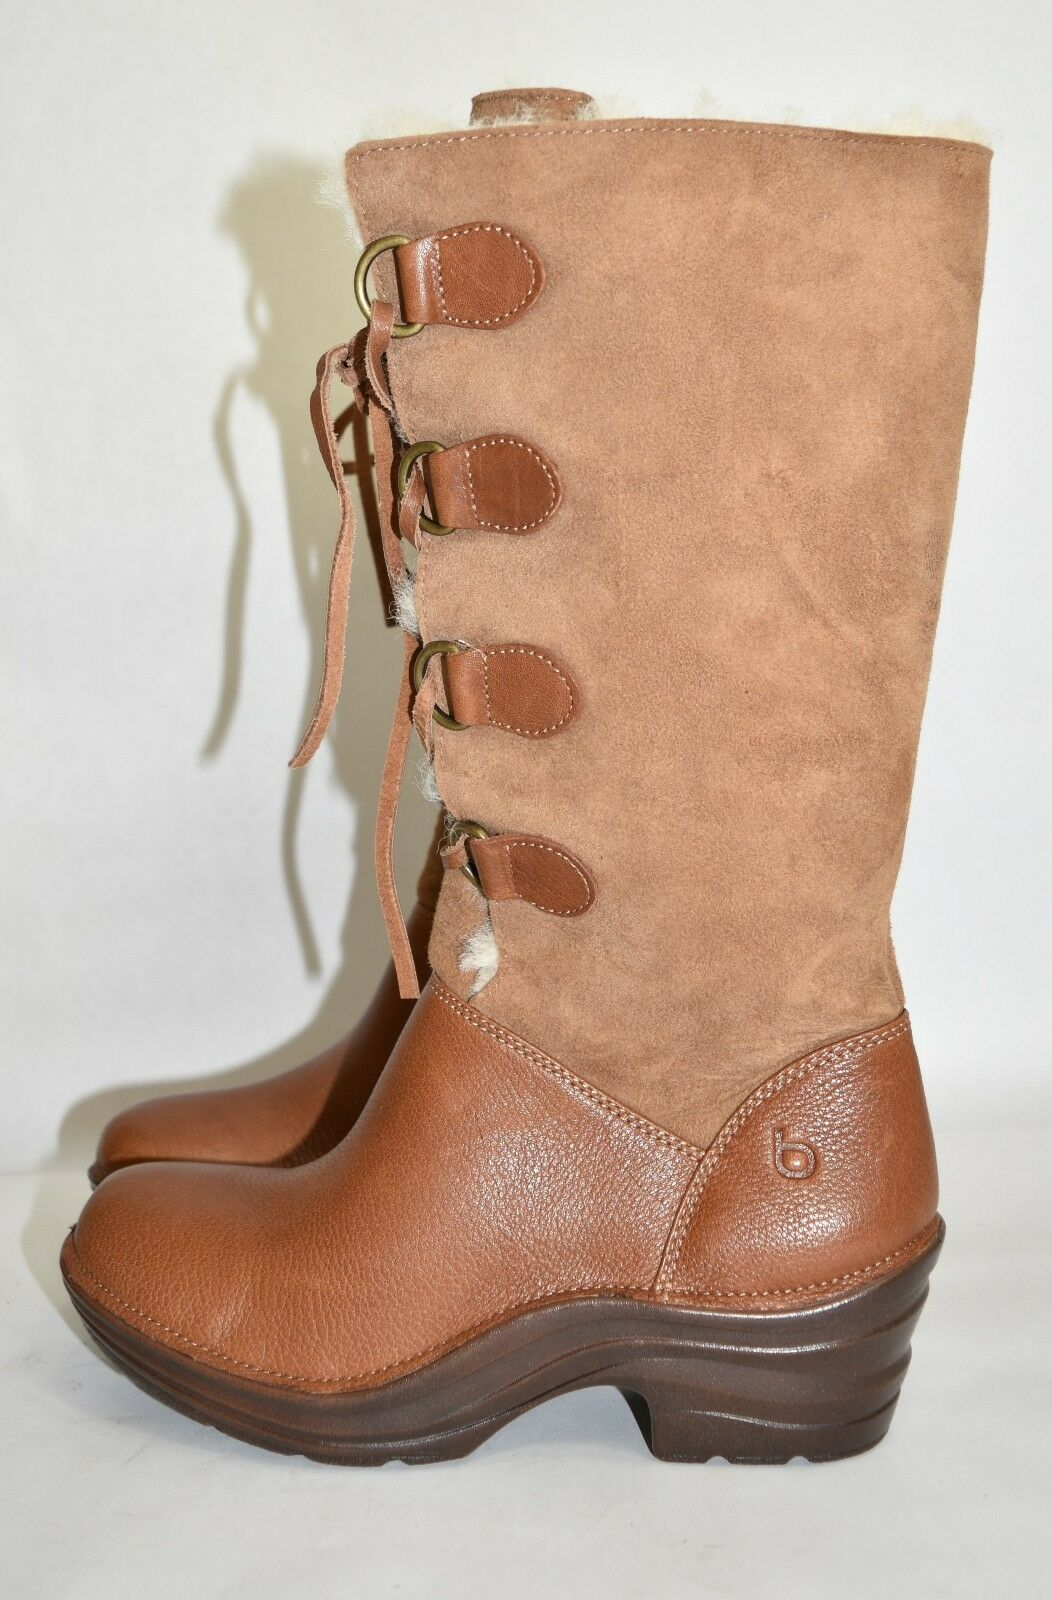 270+ BIONICA Roxen Lace Up Boot ITALIAN Genuine Shearling WATERPROOF BOOT 7 (B2